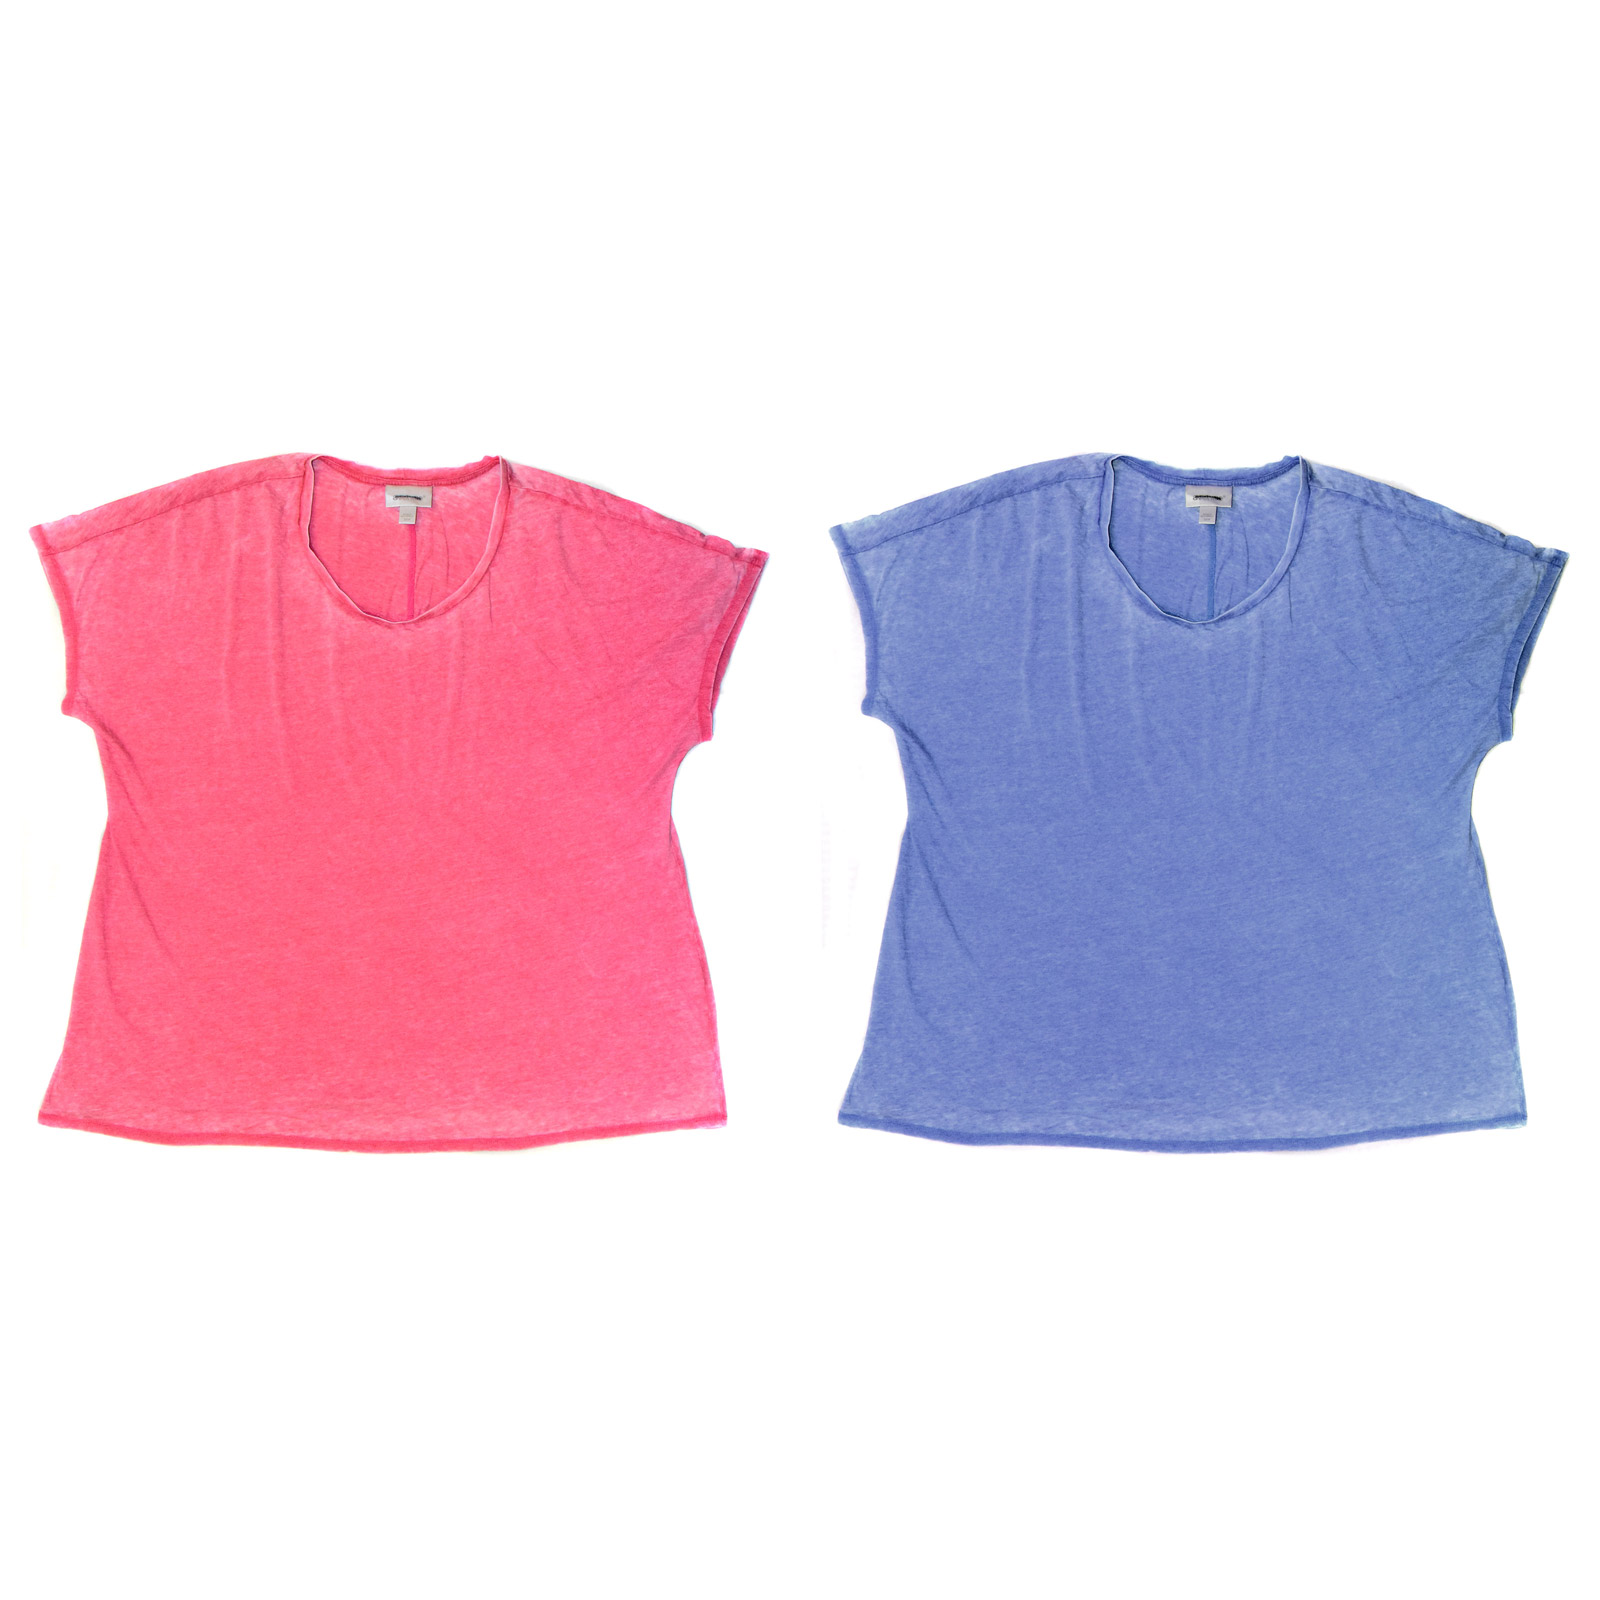 Avenue Super Soft Tee's in 2 Colors - 48pcs